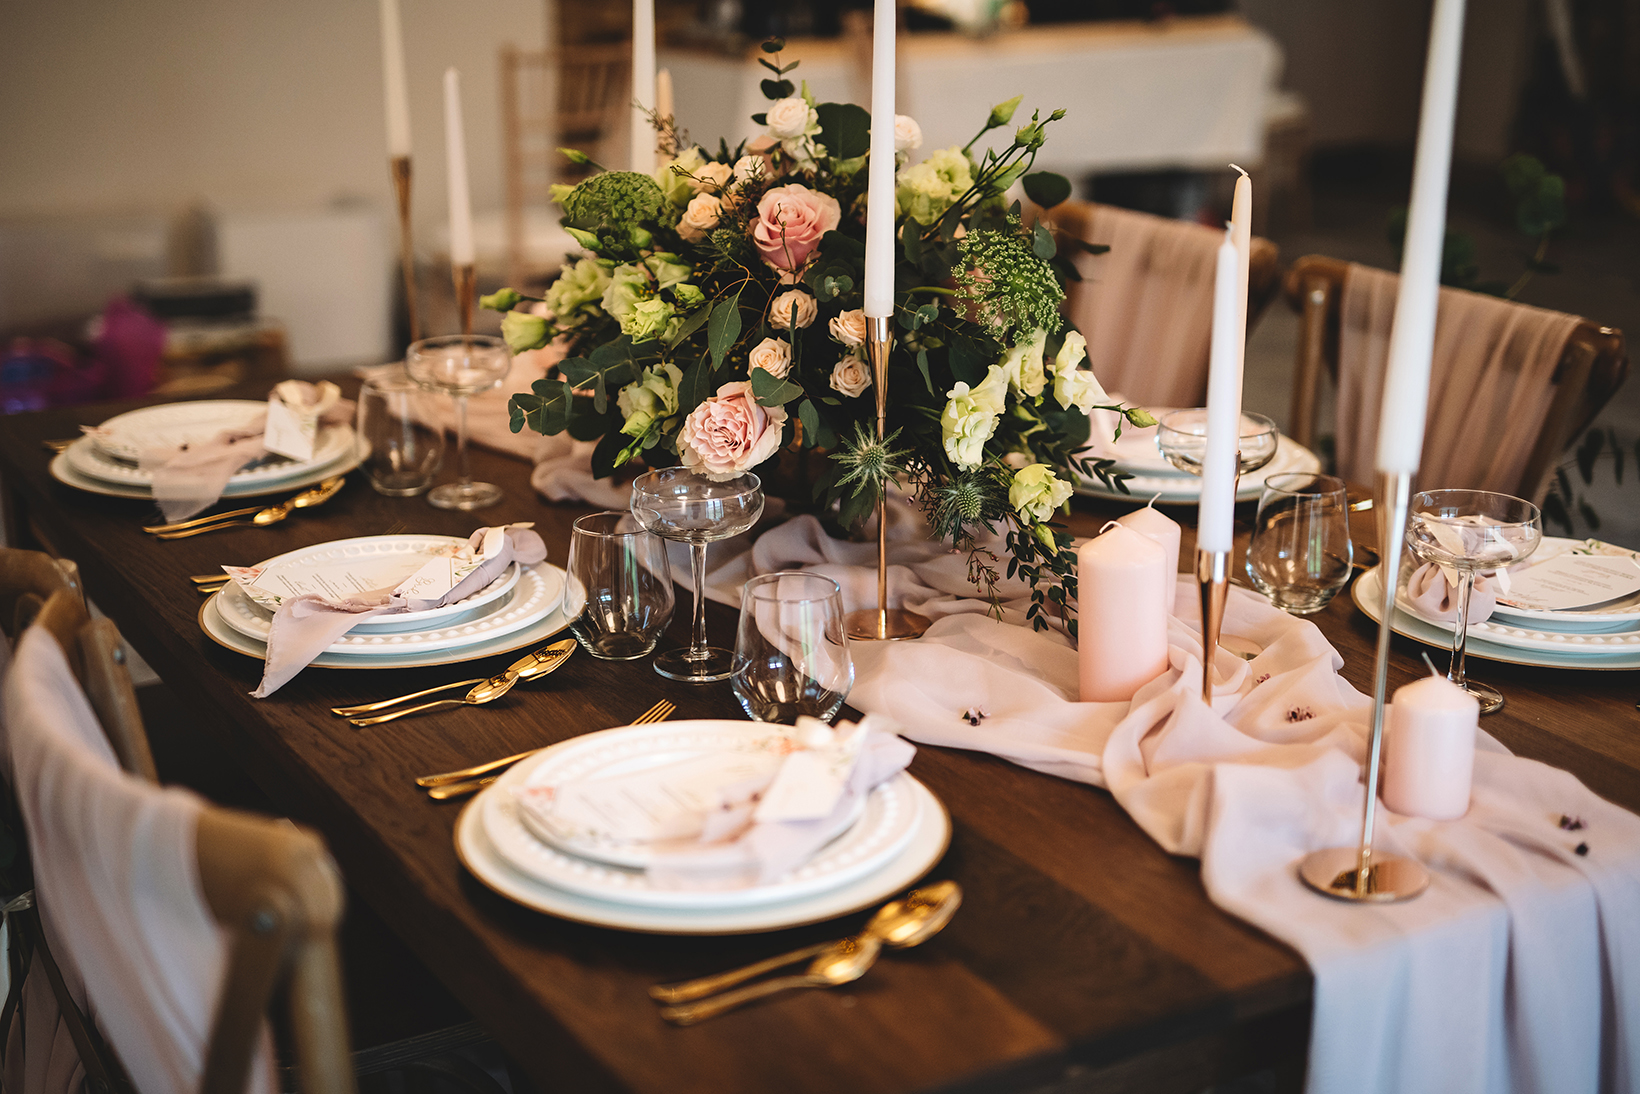 Table dressed by Samui for awedding at Manor Oaks House. Pink rustic flowers and soft styling for a romantic farm house feel